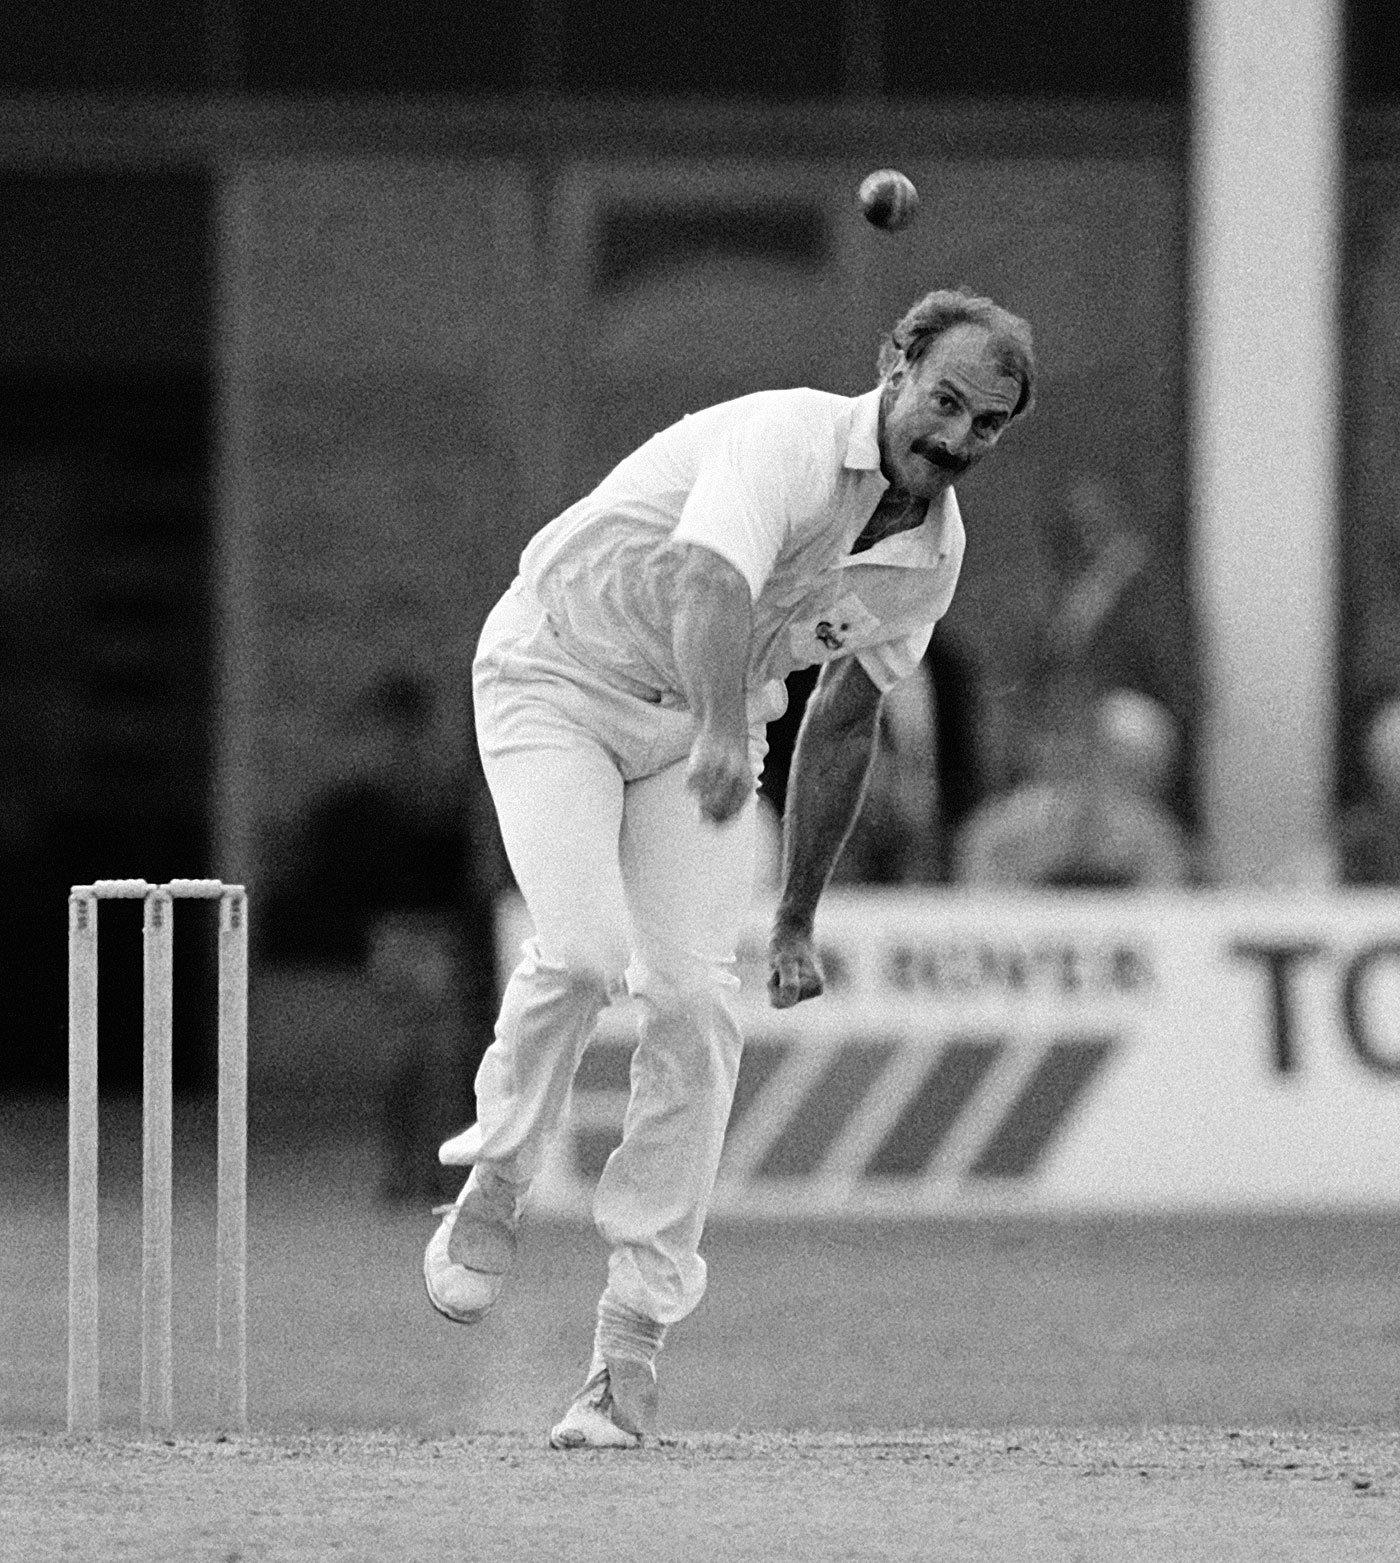 Hungry like the wolf: Lillee draws on the dregs of the tank for Northants in 1988